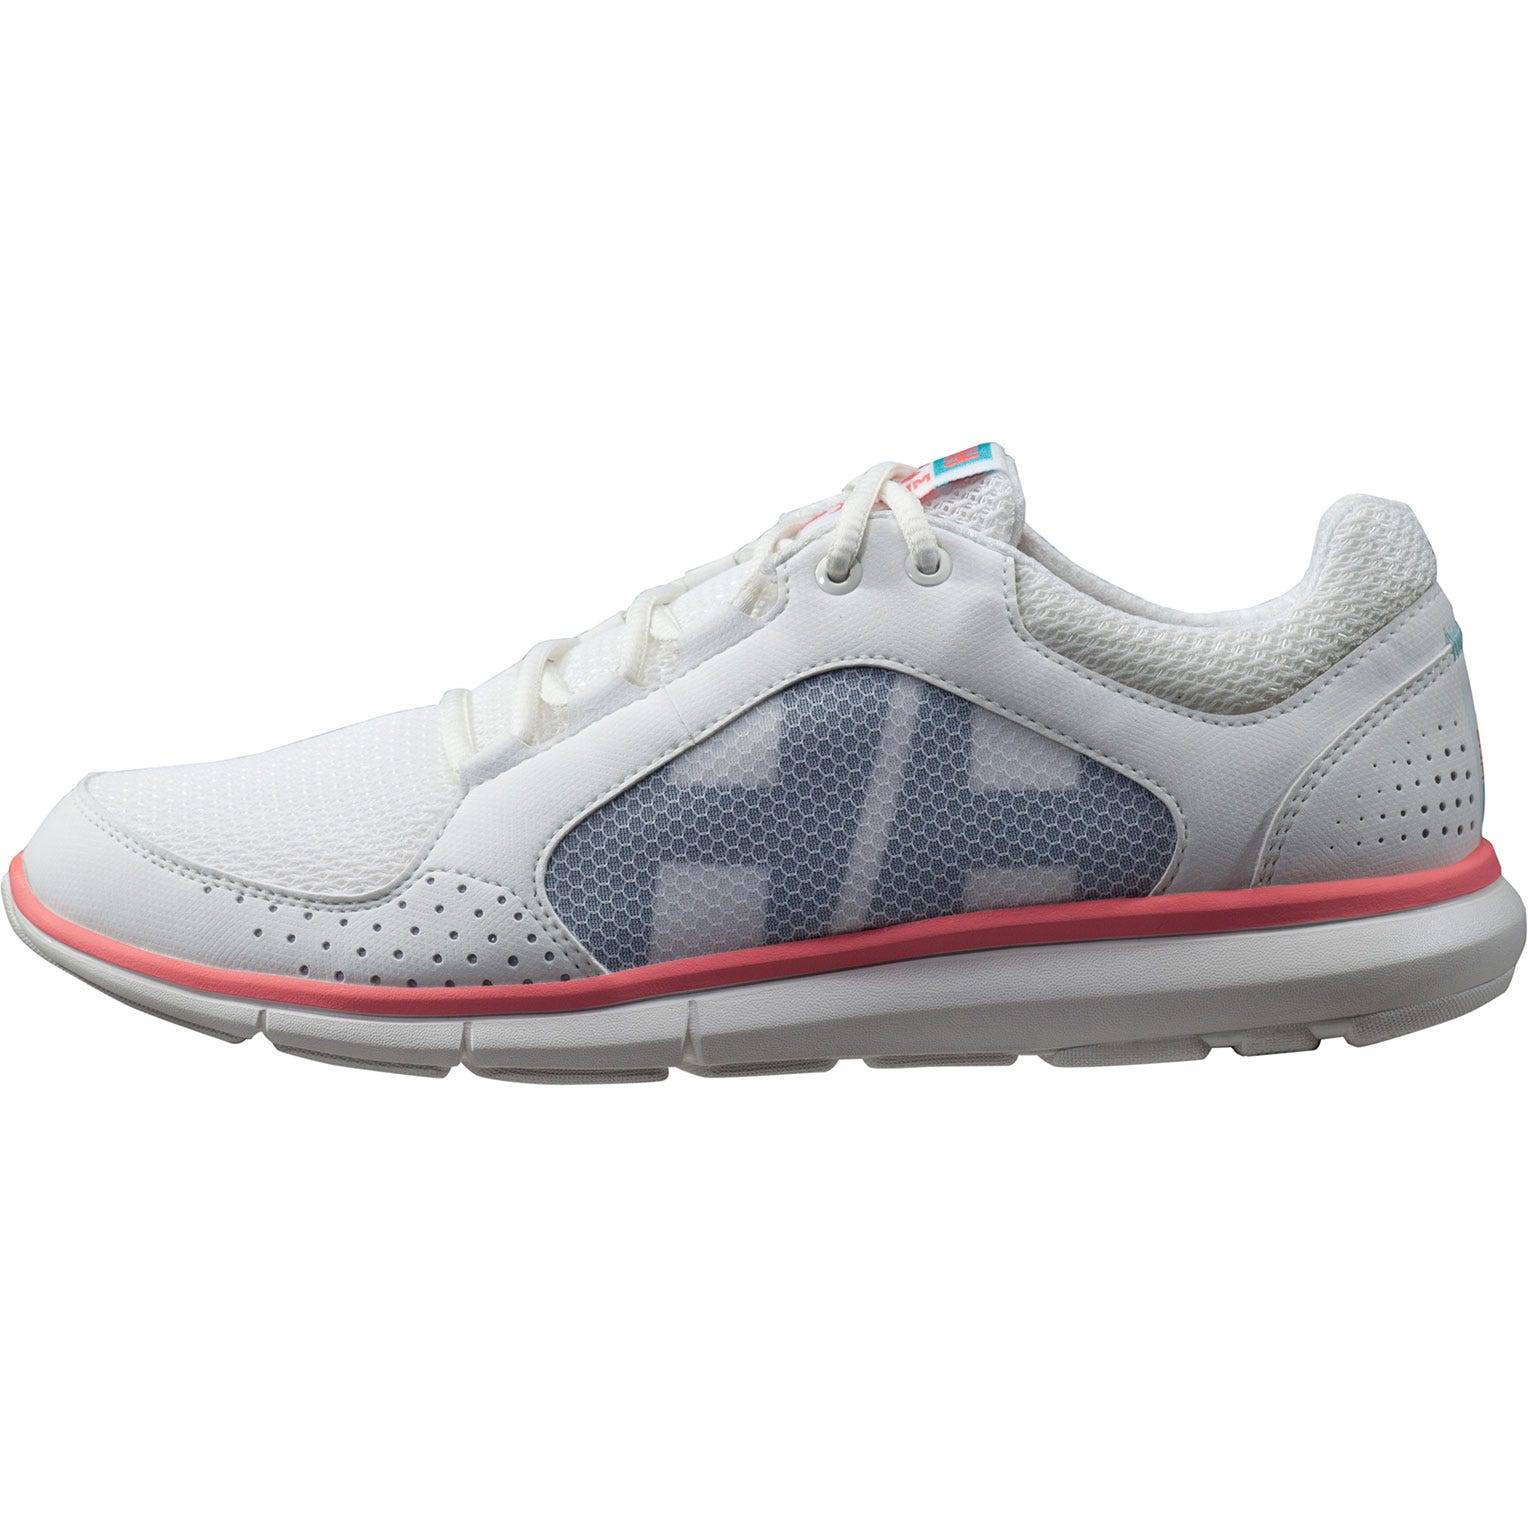 Helly Hansen W Ahiga V3 Hydropower Womens Sailing Shoe White 40/8.5